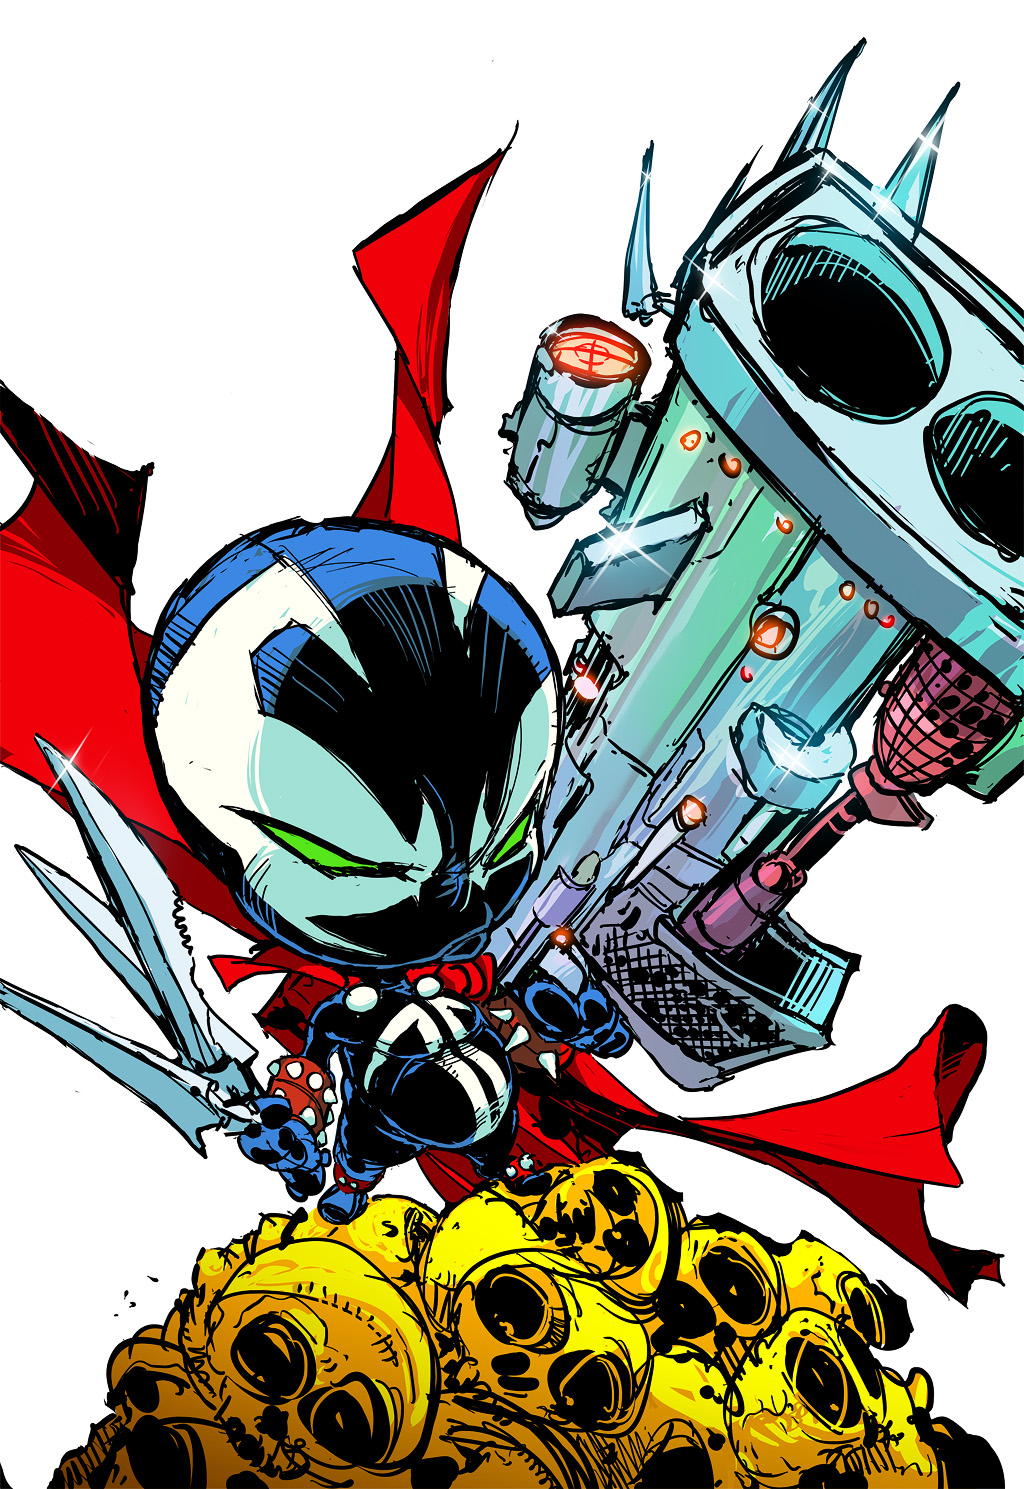 BABY SPAWN COVER COLORlo